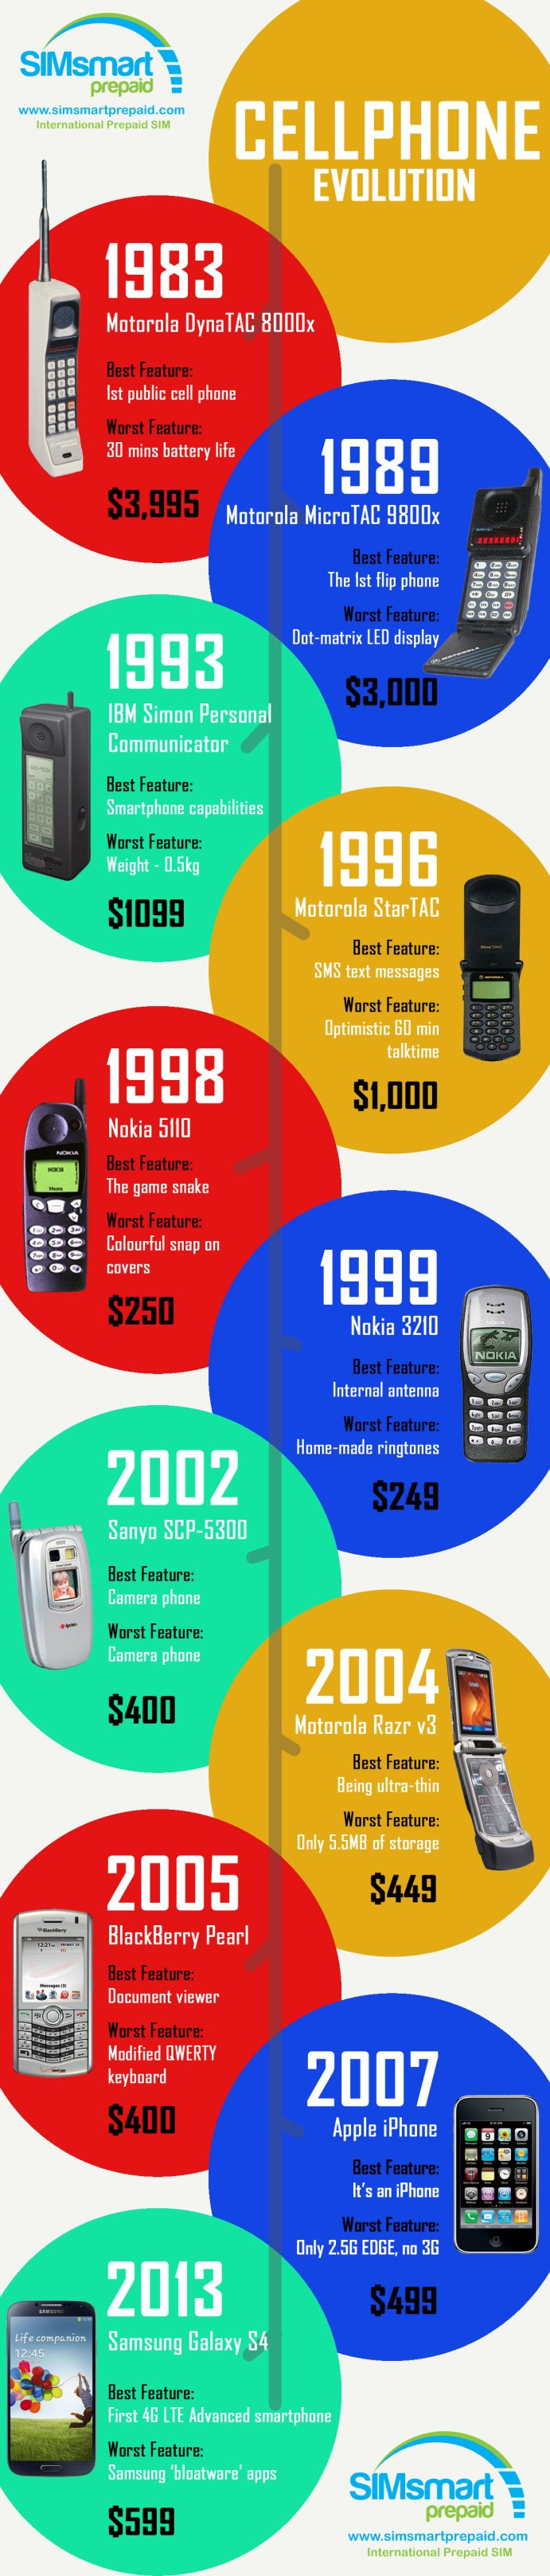 Cellphone History - Evolution of the Cellphone